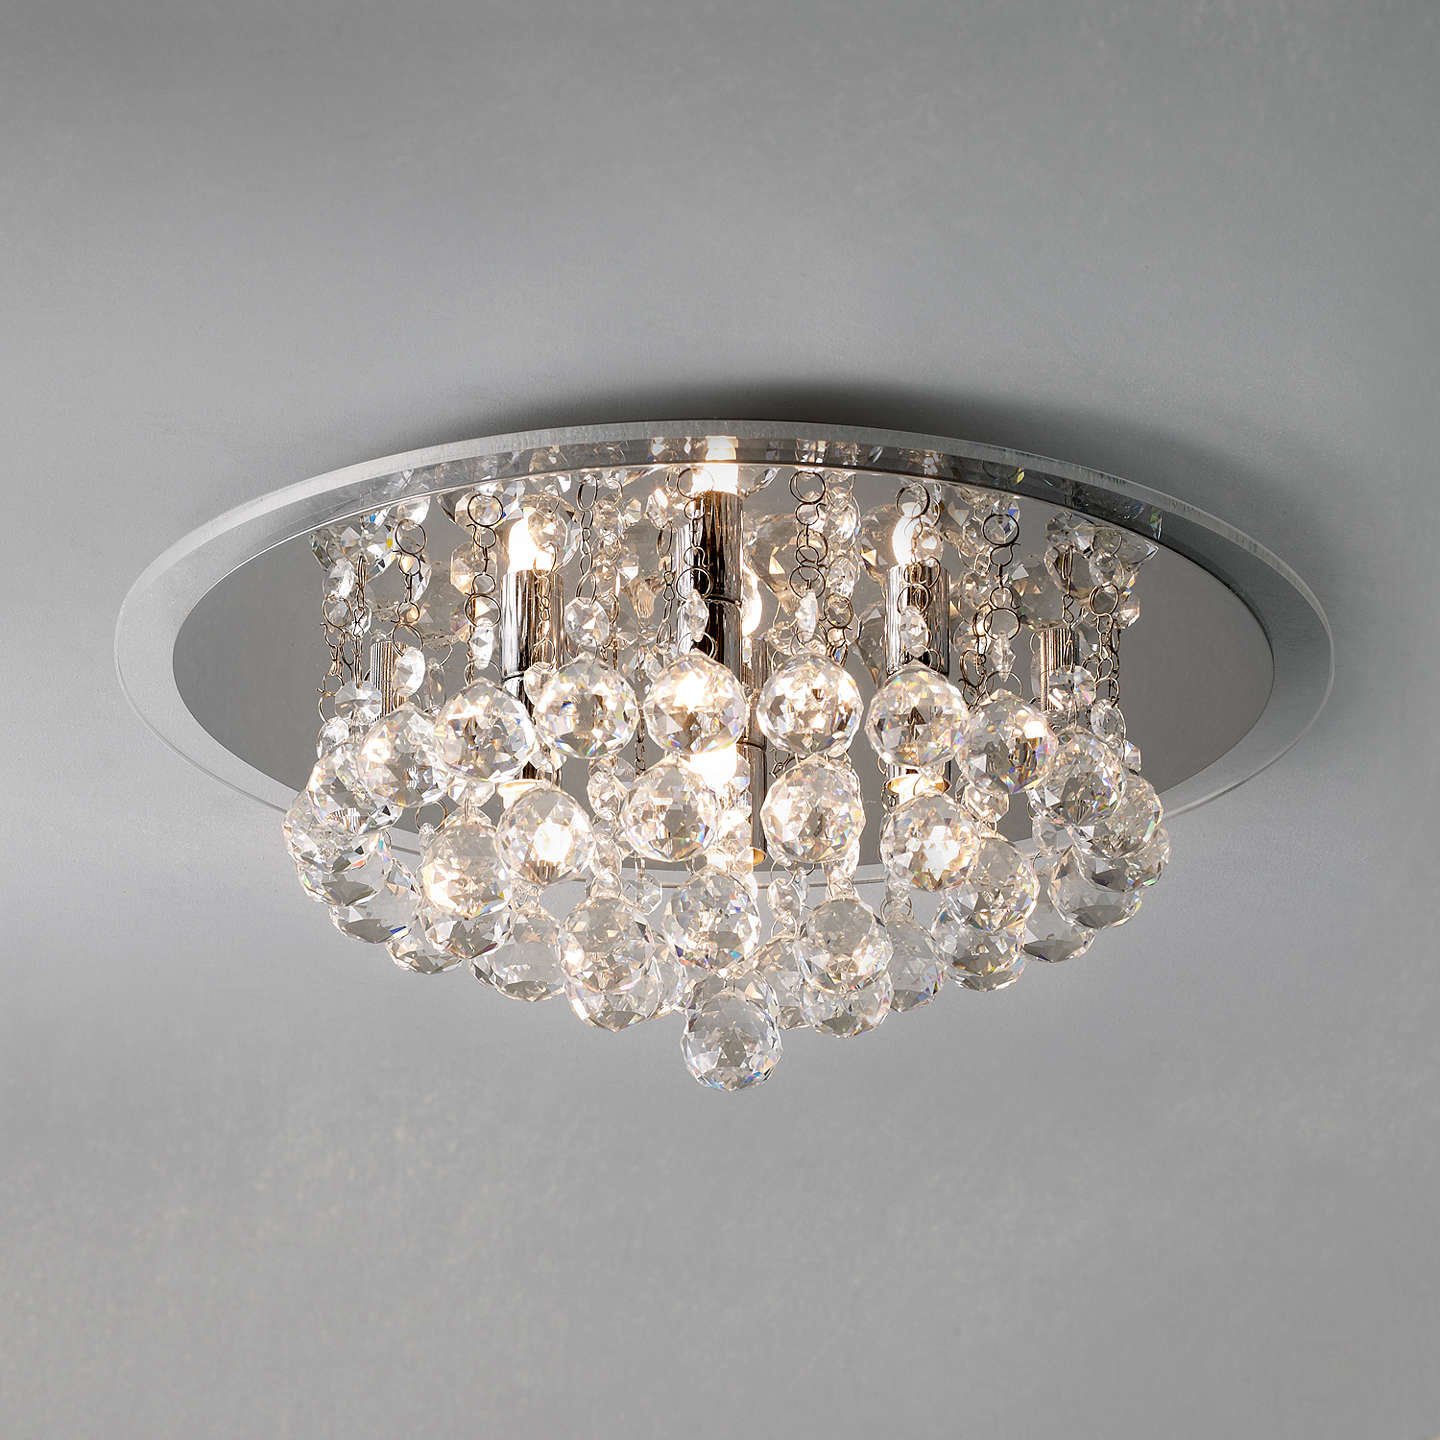 John lewis belinda flush ceiling light chrome crystal - Flush mount bathroom ceiling lights ...